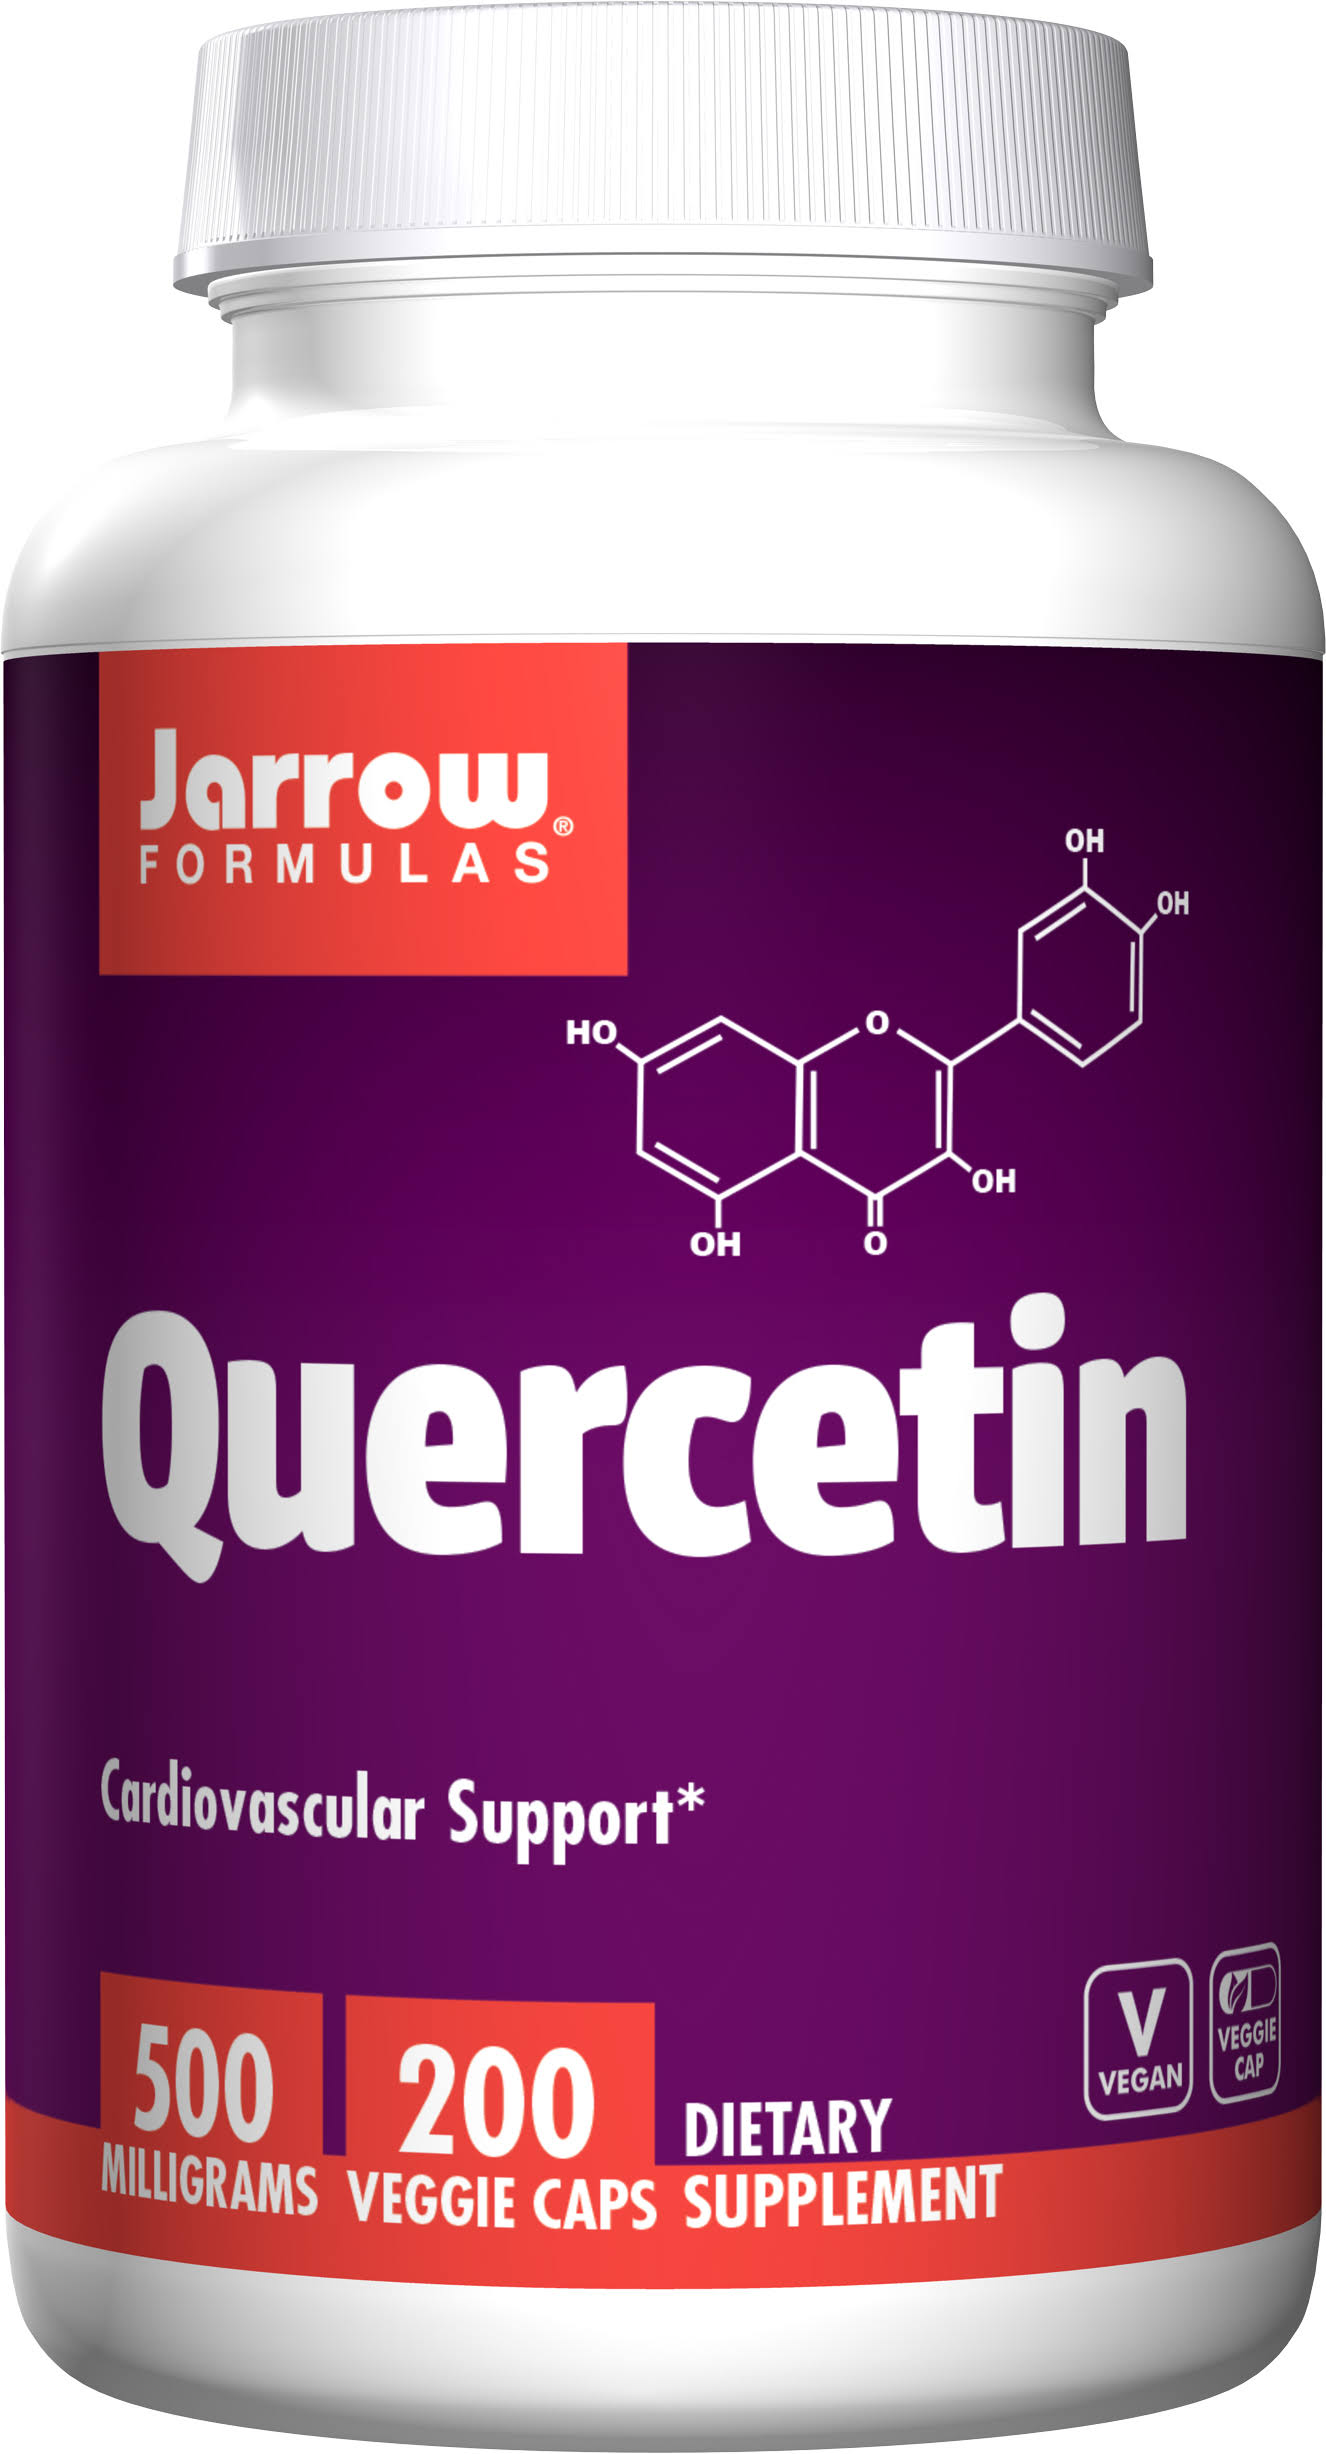 Jarrow Formulas Quercetin Dietary Supplement - 200 Capsules